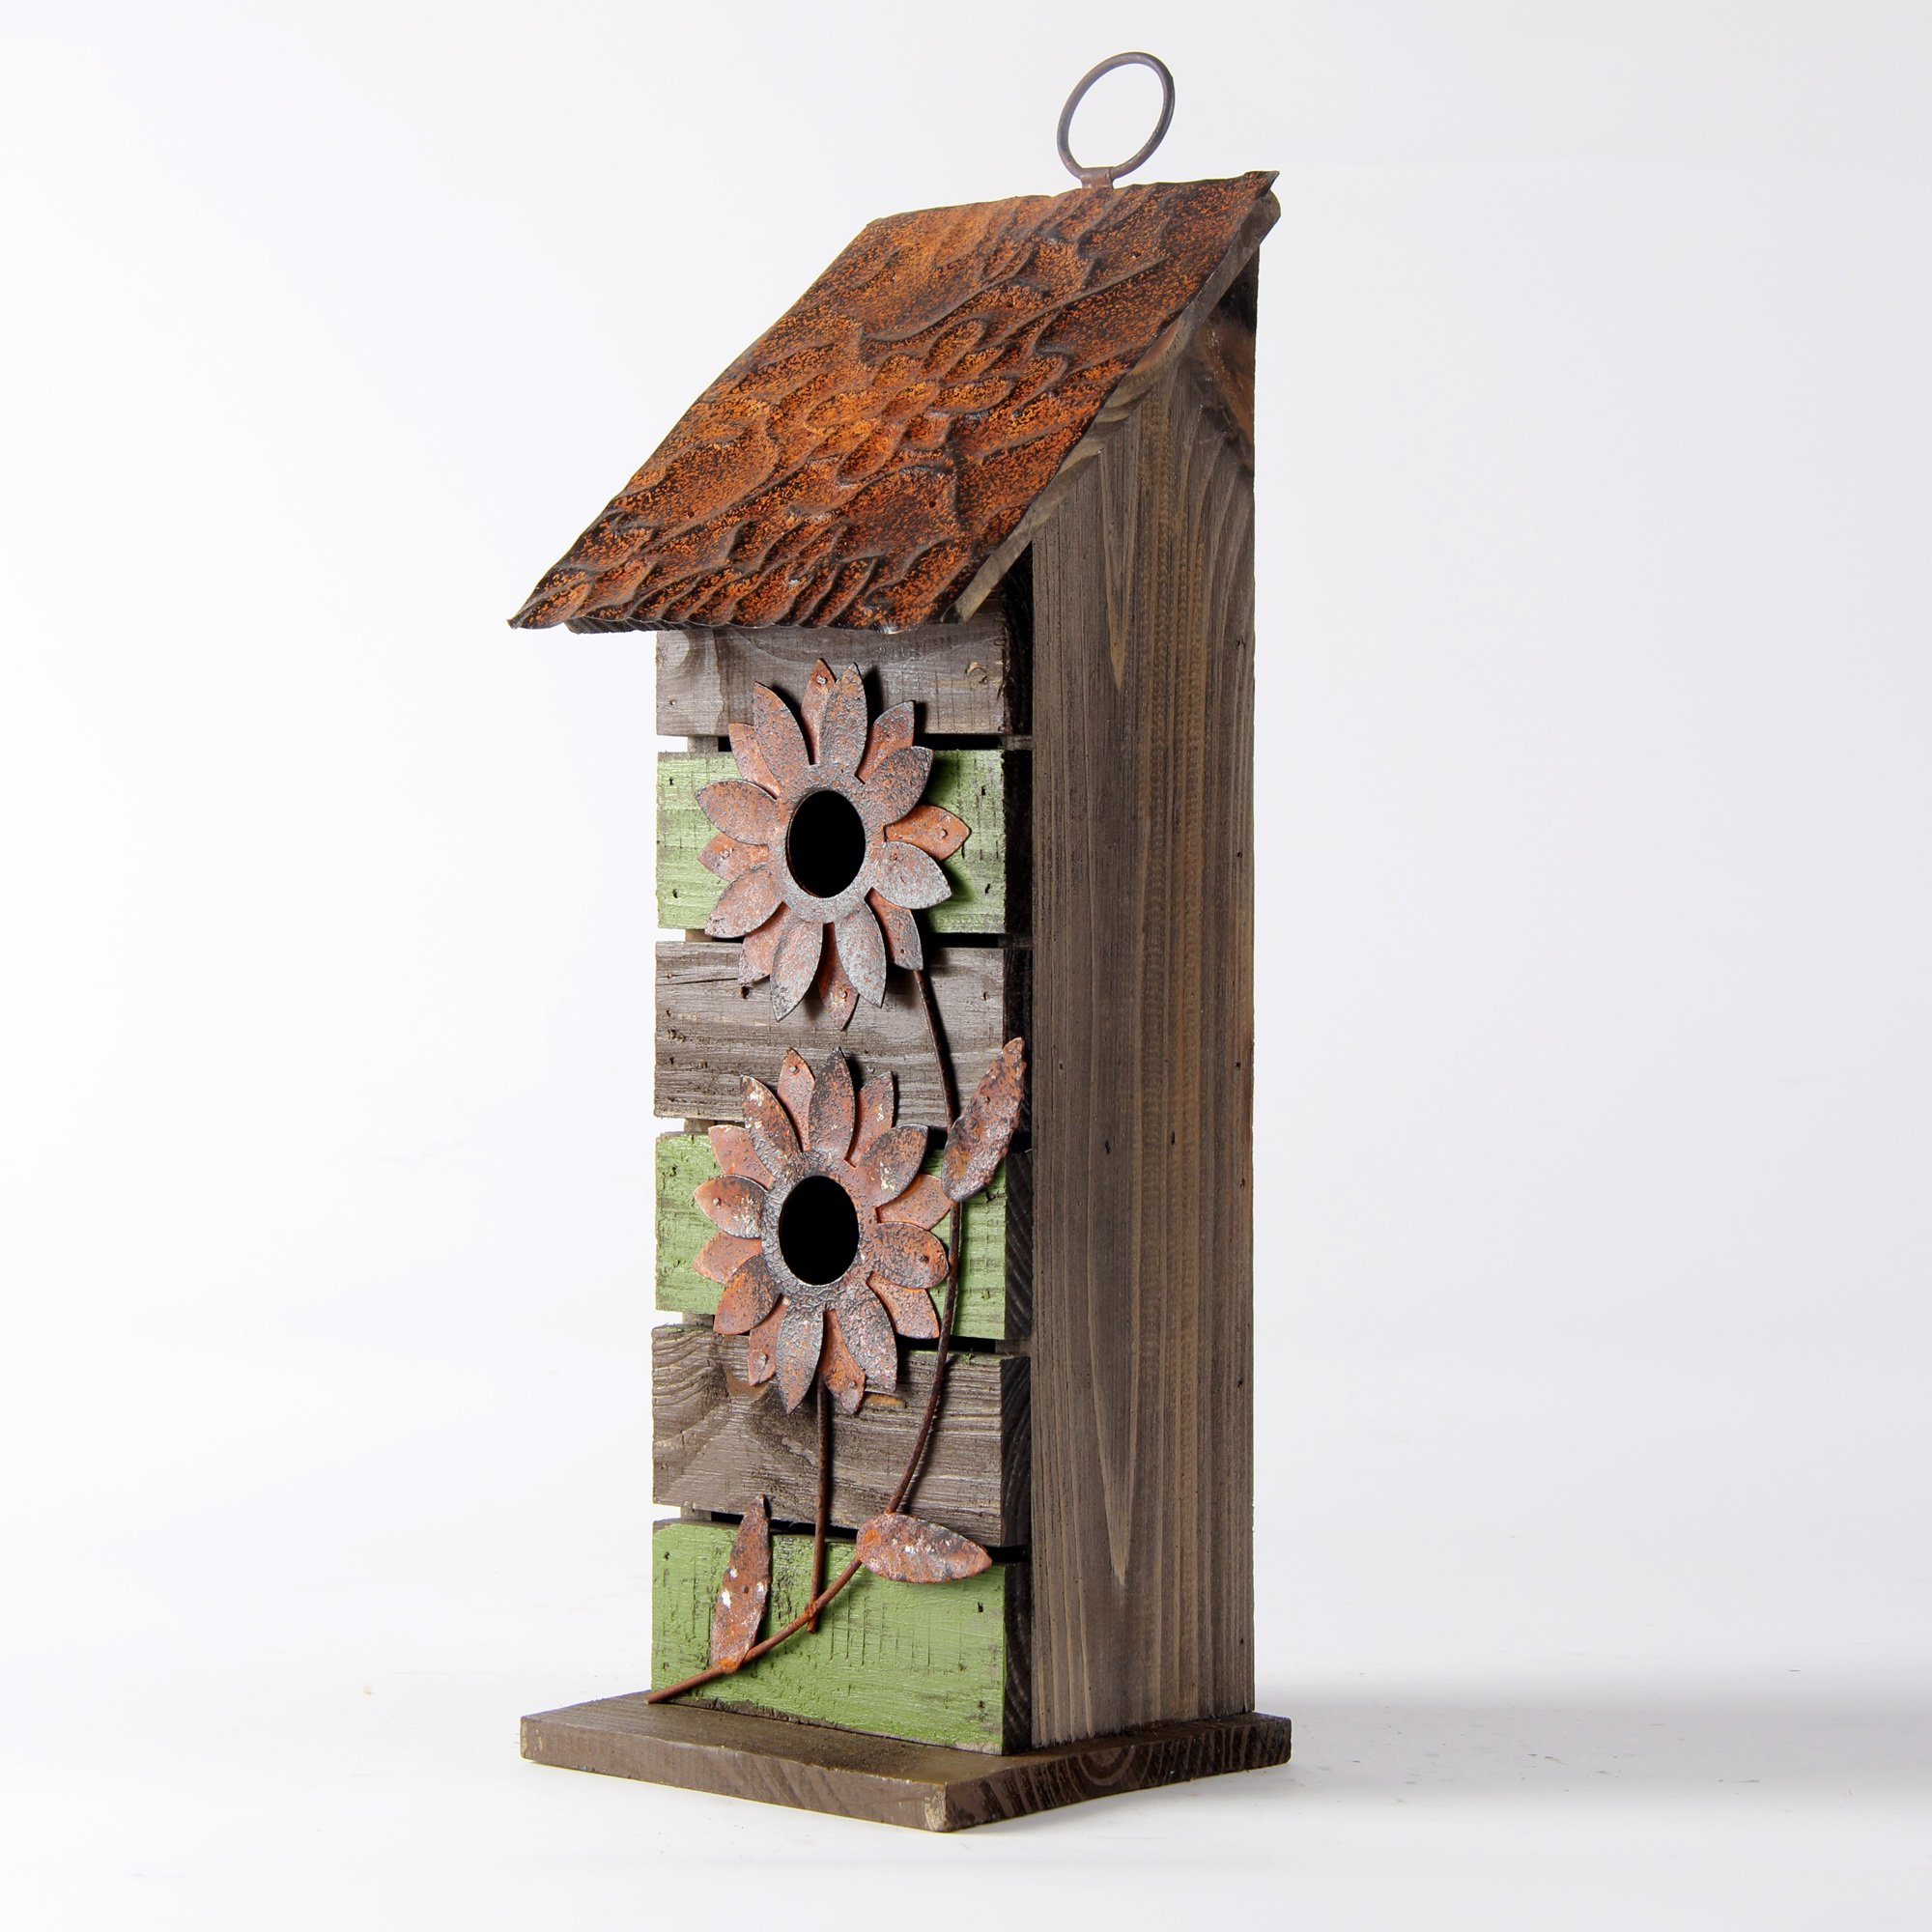 Glitzhome 14.45''H Wooden Garden Bird House Hanging Two-Tiered Distressed With Flowers